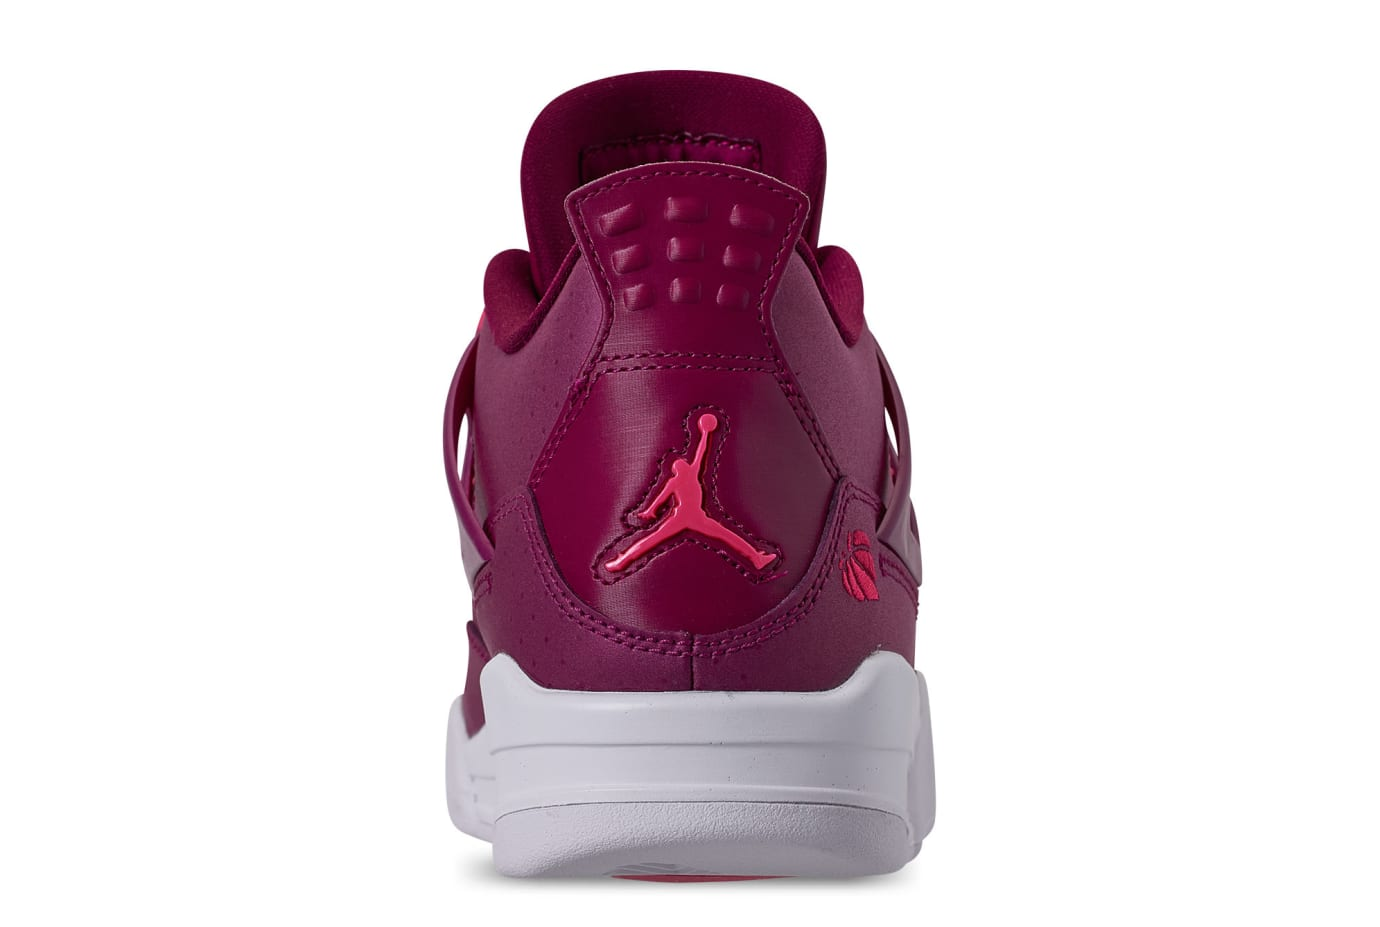 db5965f6196 Image via Finish Line Air Jordan 4 Retro GS  True Berry Rush Pink White   487724-